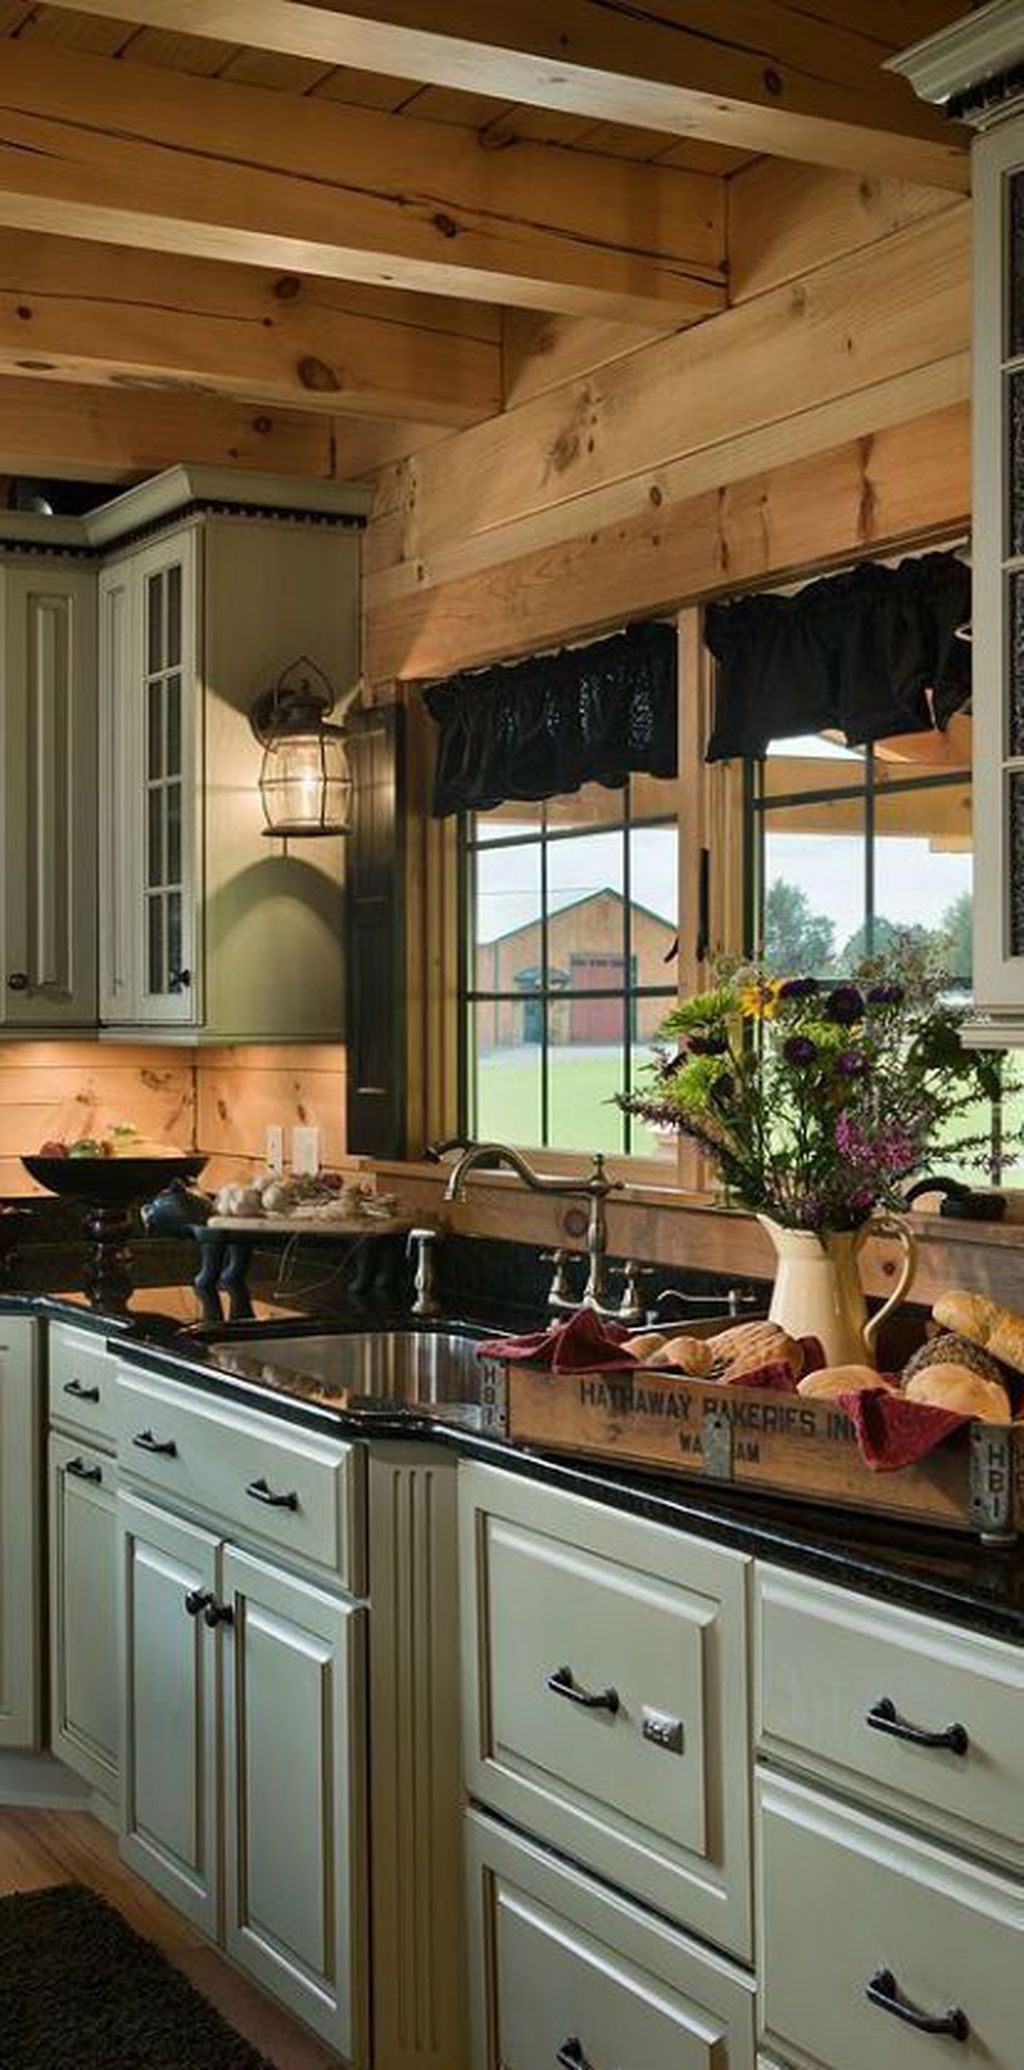 35 farmhouse rustic kitchen cabinet design both storey design makes it feasible to produce a on kitchen cabinets farmhouse style id=58269